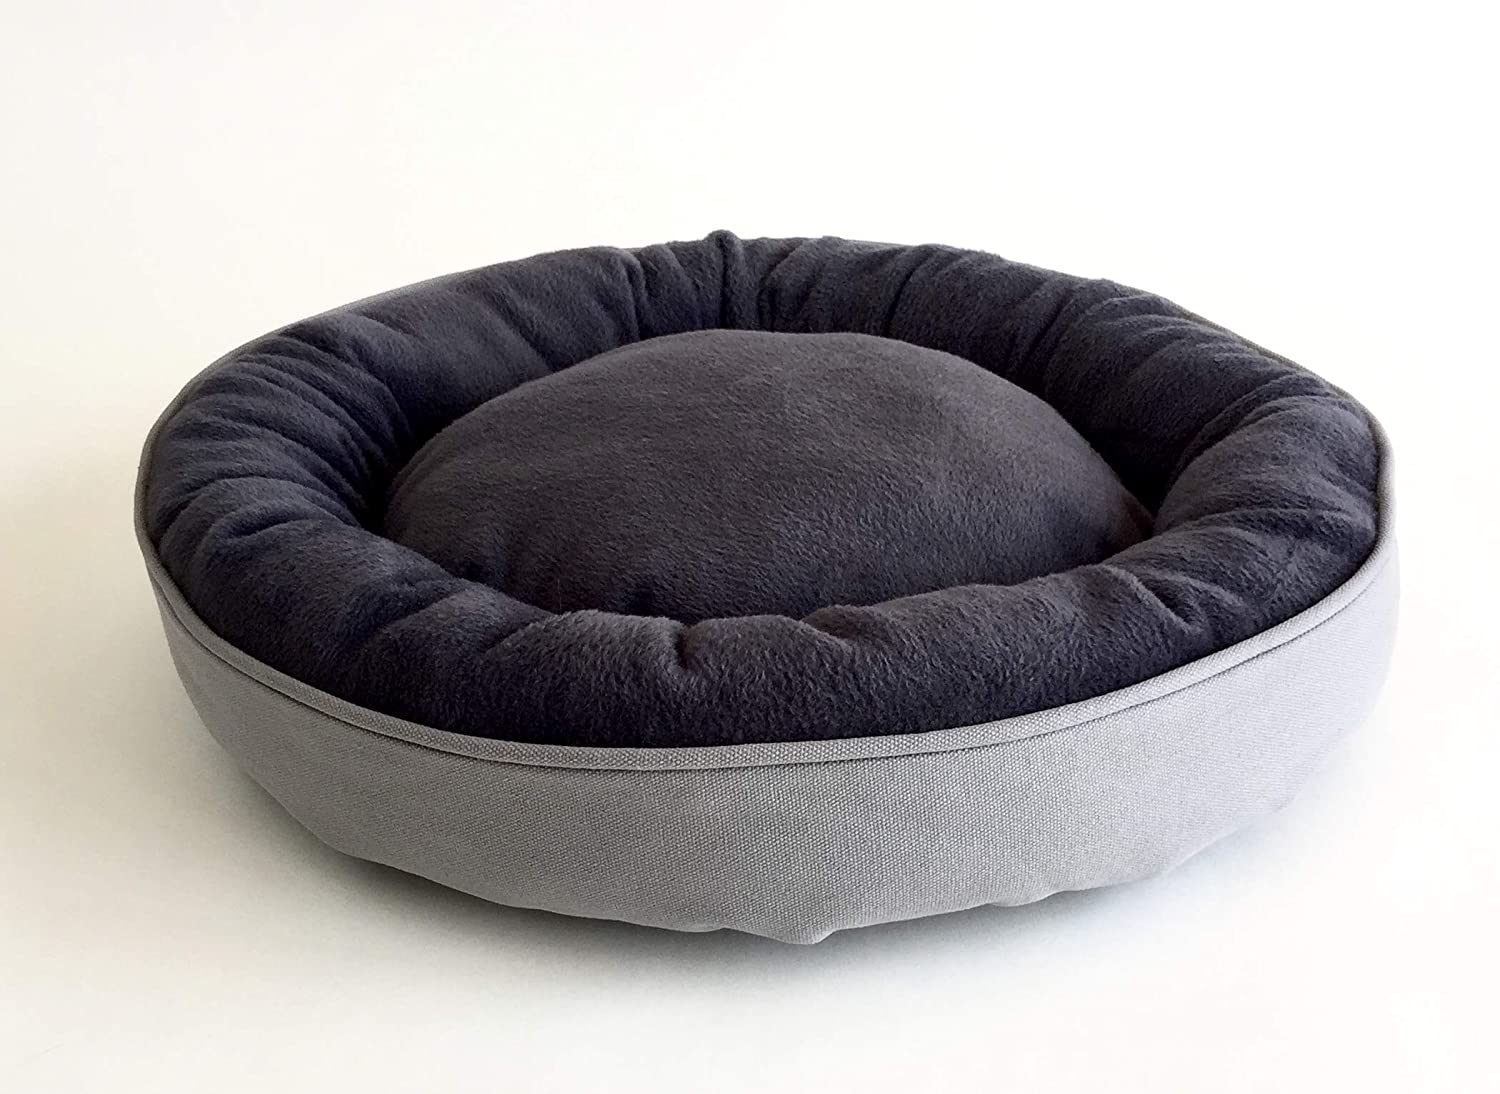 HUSH MOOD Round Cuddler Pet Bed. 100% Cotton Plush and Canvas. Cozy Nesting Donut Bed for Cats and Small Dogs. Grey Canvas, Dark Grey Plush